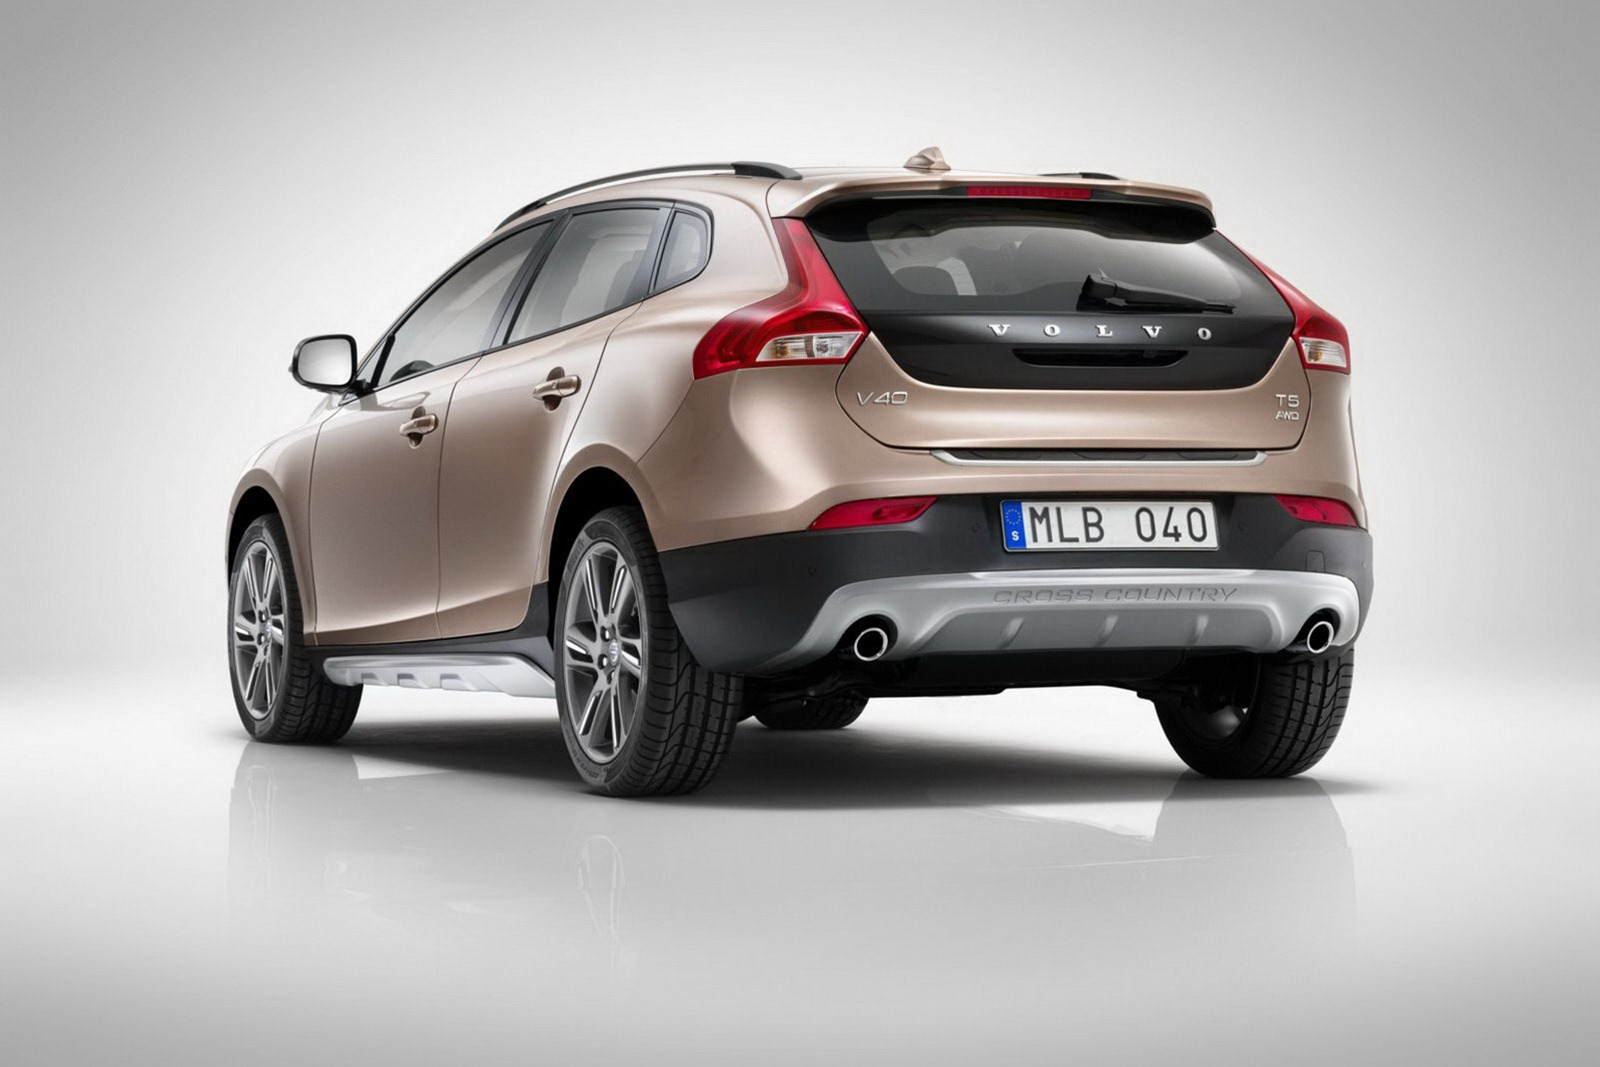 Volvo_V40_Cross_Country_Rear_3Q